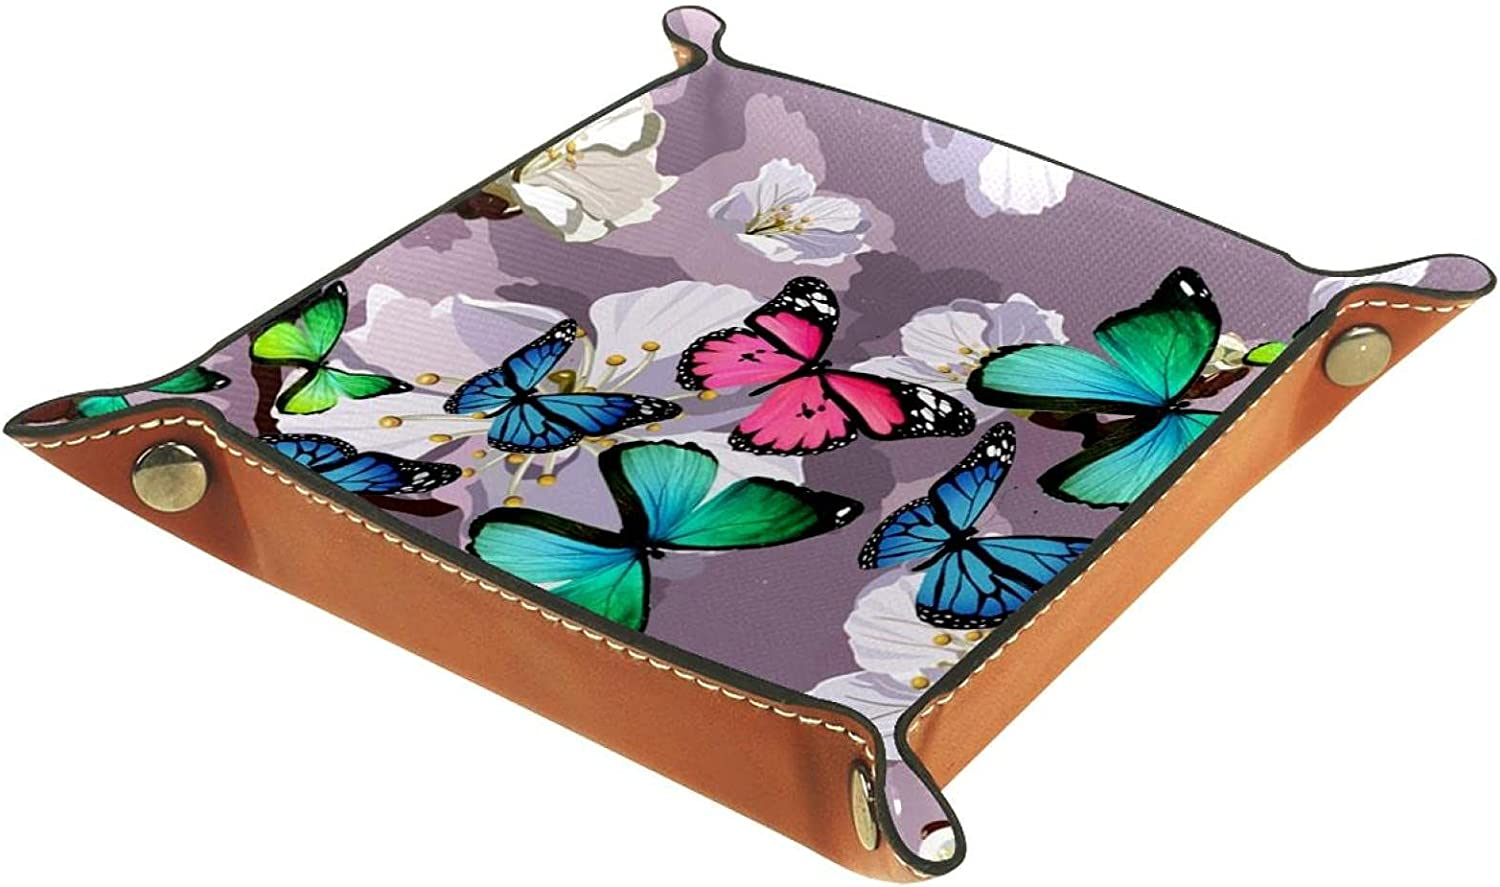 ASDWA Free shipping / New PU Leather Foldable Dice Rolling St Online limited product Jewelry for Watch Tray